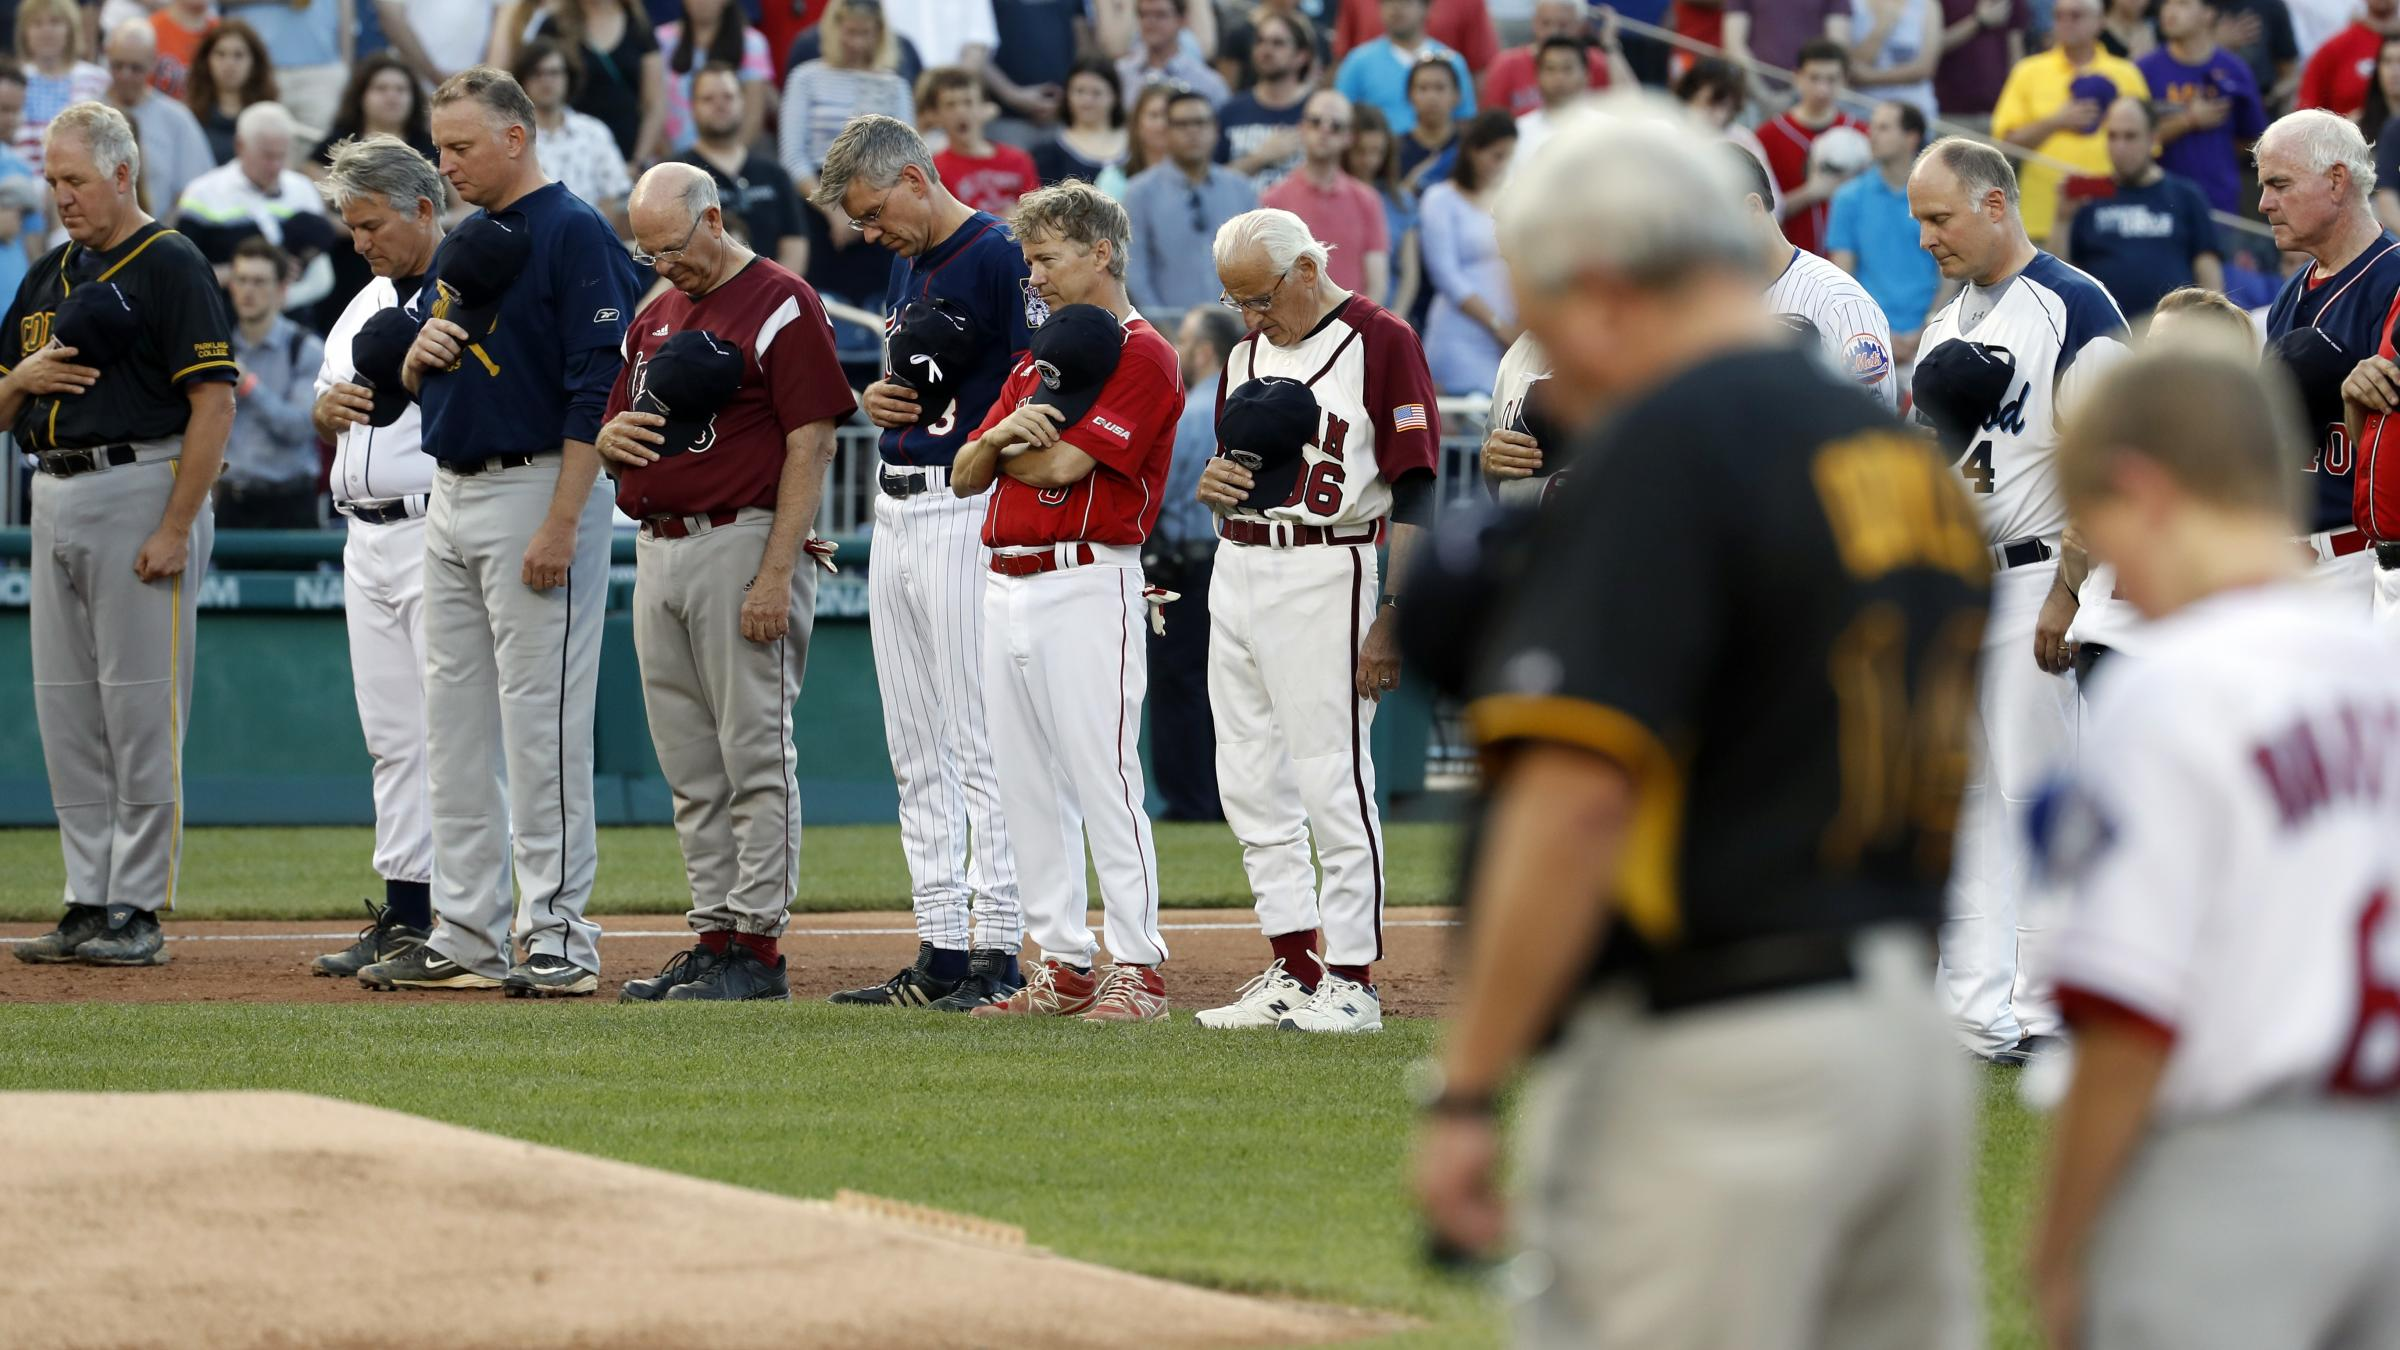 Rivals 'all Team Scalise' as political baseball clash honours shot Republican